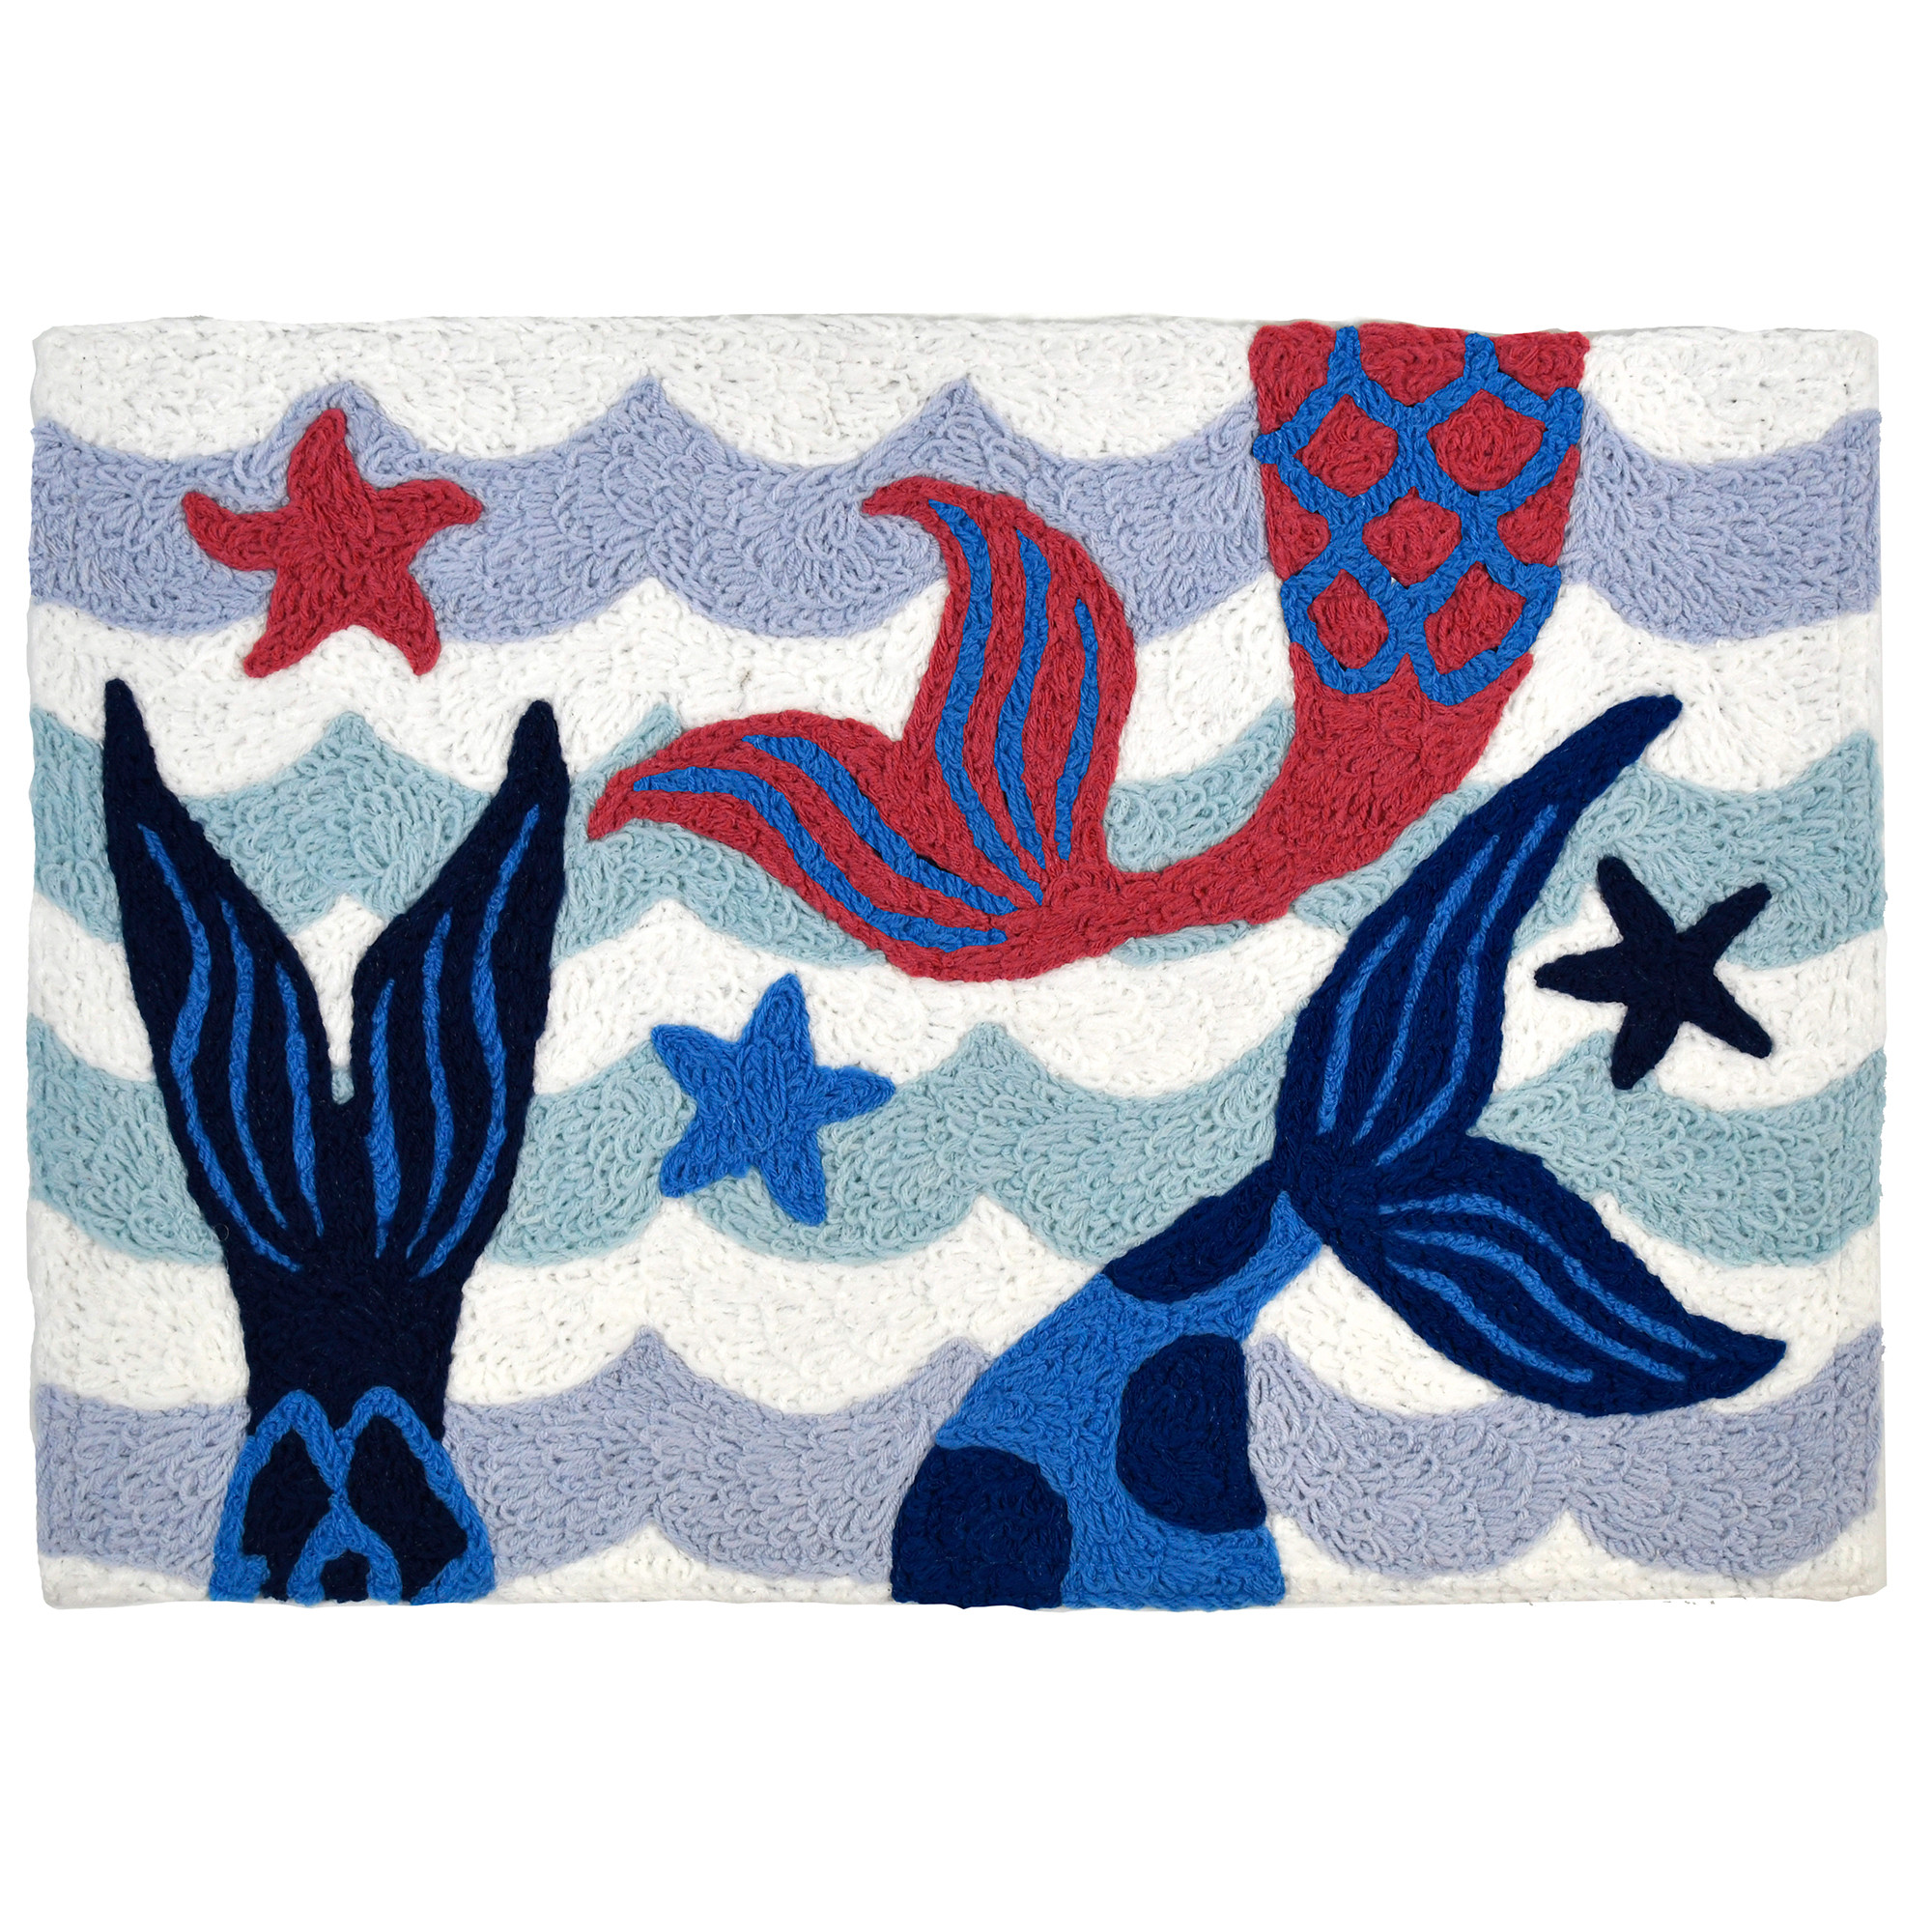 Three tails splash in dazzling blue water among the starfish. This mermaid themed Jellybean® accent rug will bring whimsical enjoyment to the indoor or outdoor space of your choice. The polyester fibers of this blue and white accent rug are machine washable.